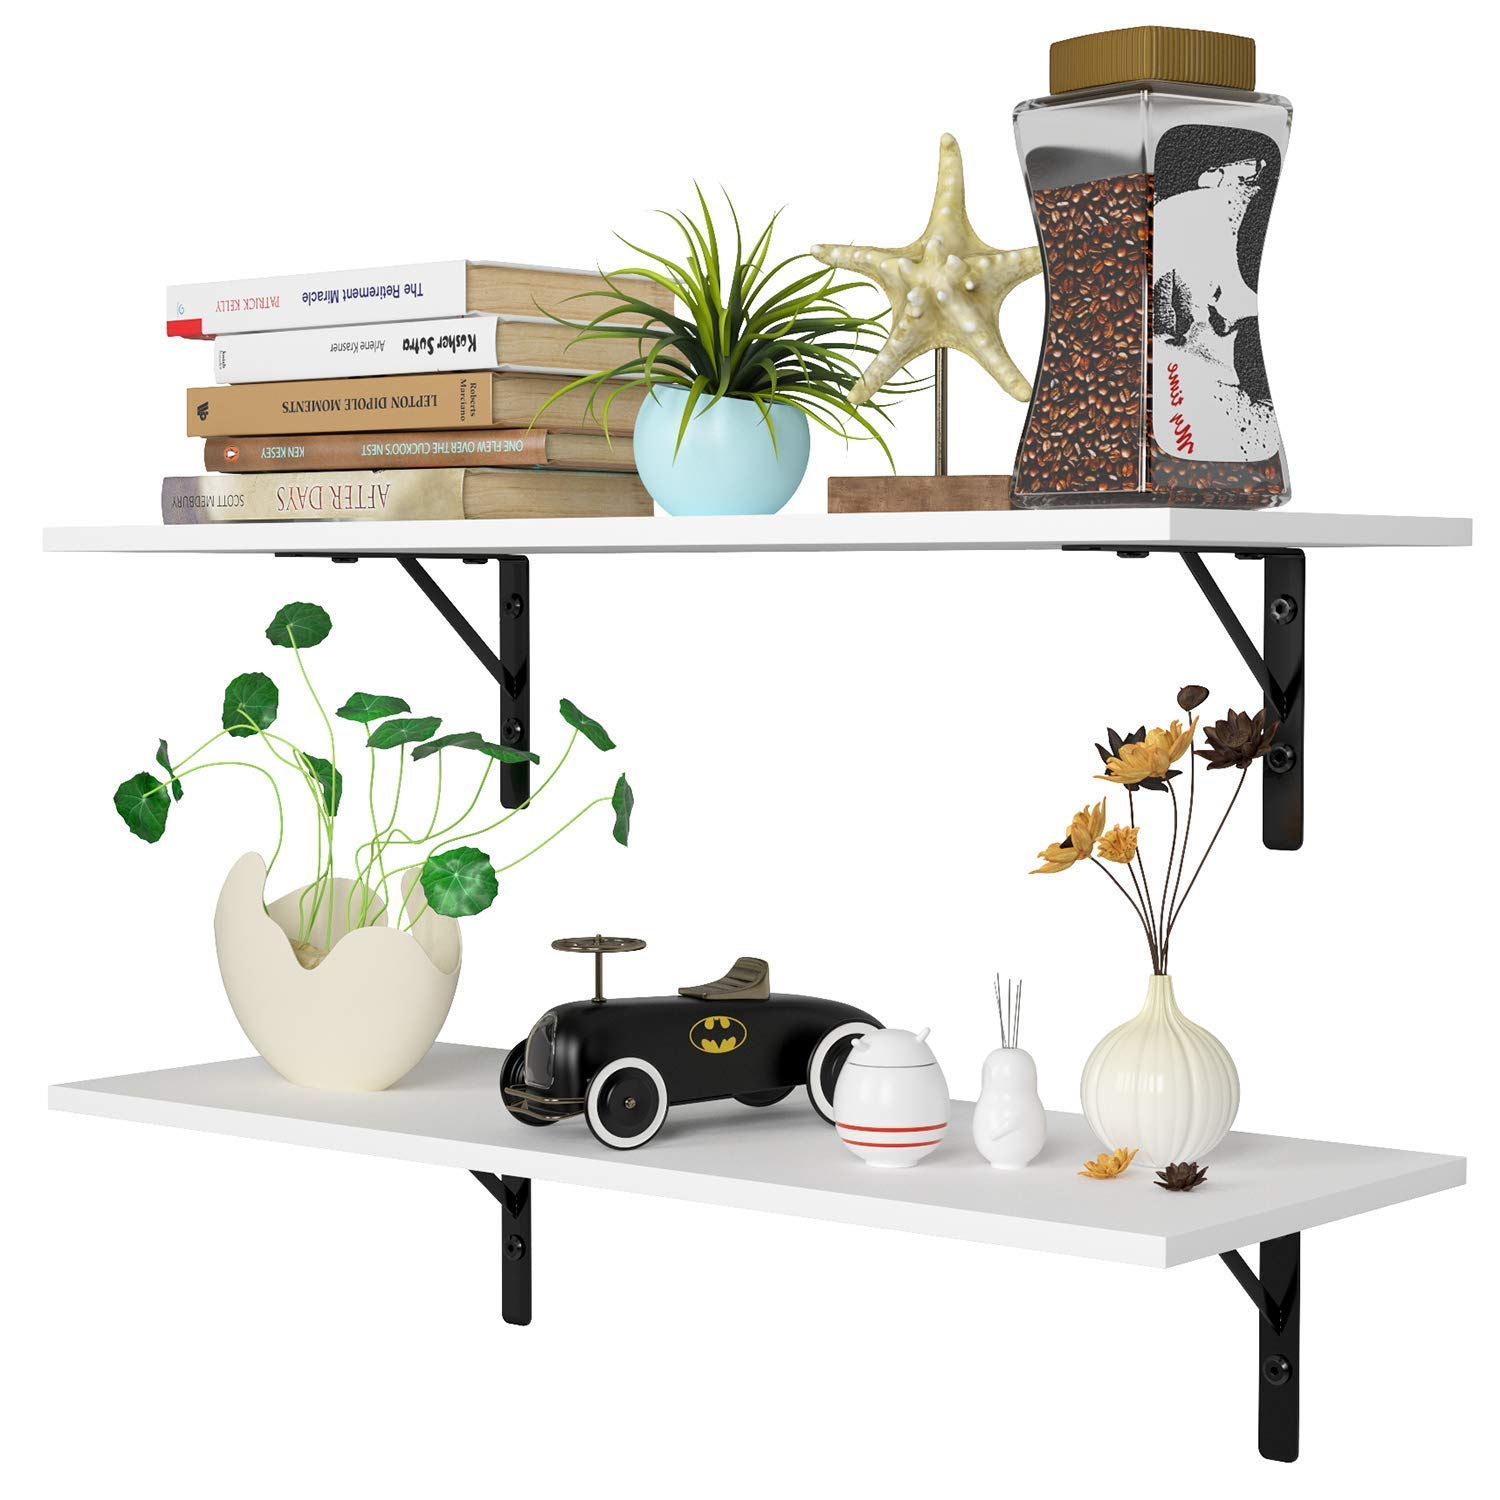 Homfa Floating Shelves Wall-Mounted Display Storage Ledge with Bracket for Bathroom, Kitchen, Living Room, Bedroom, Large 31.5X 11.6X 7.3in (White)